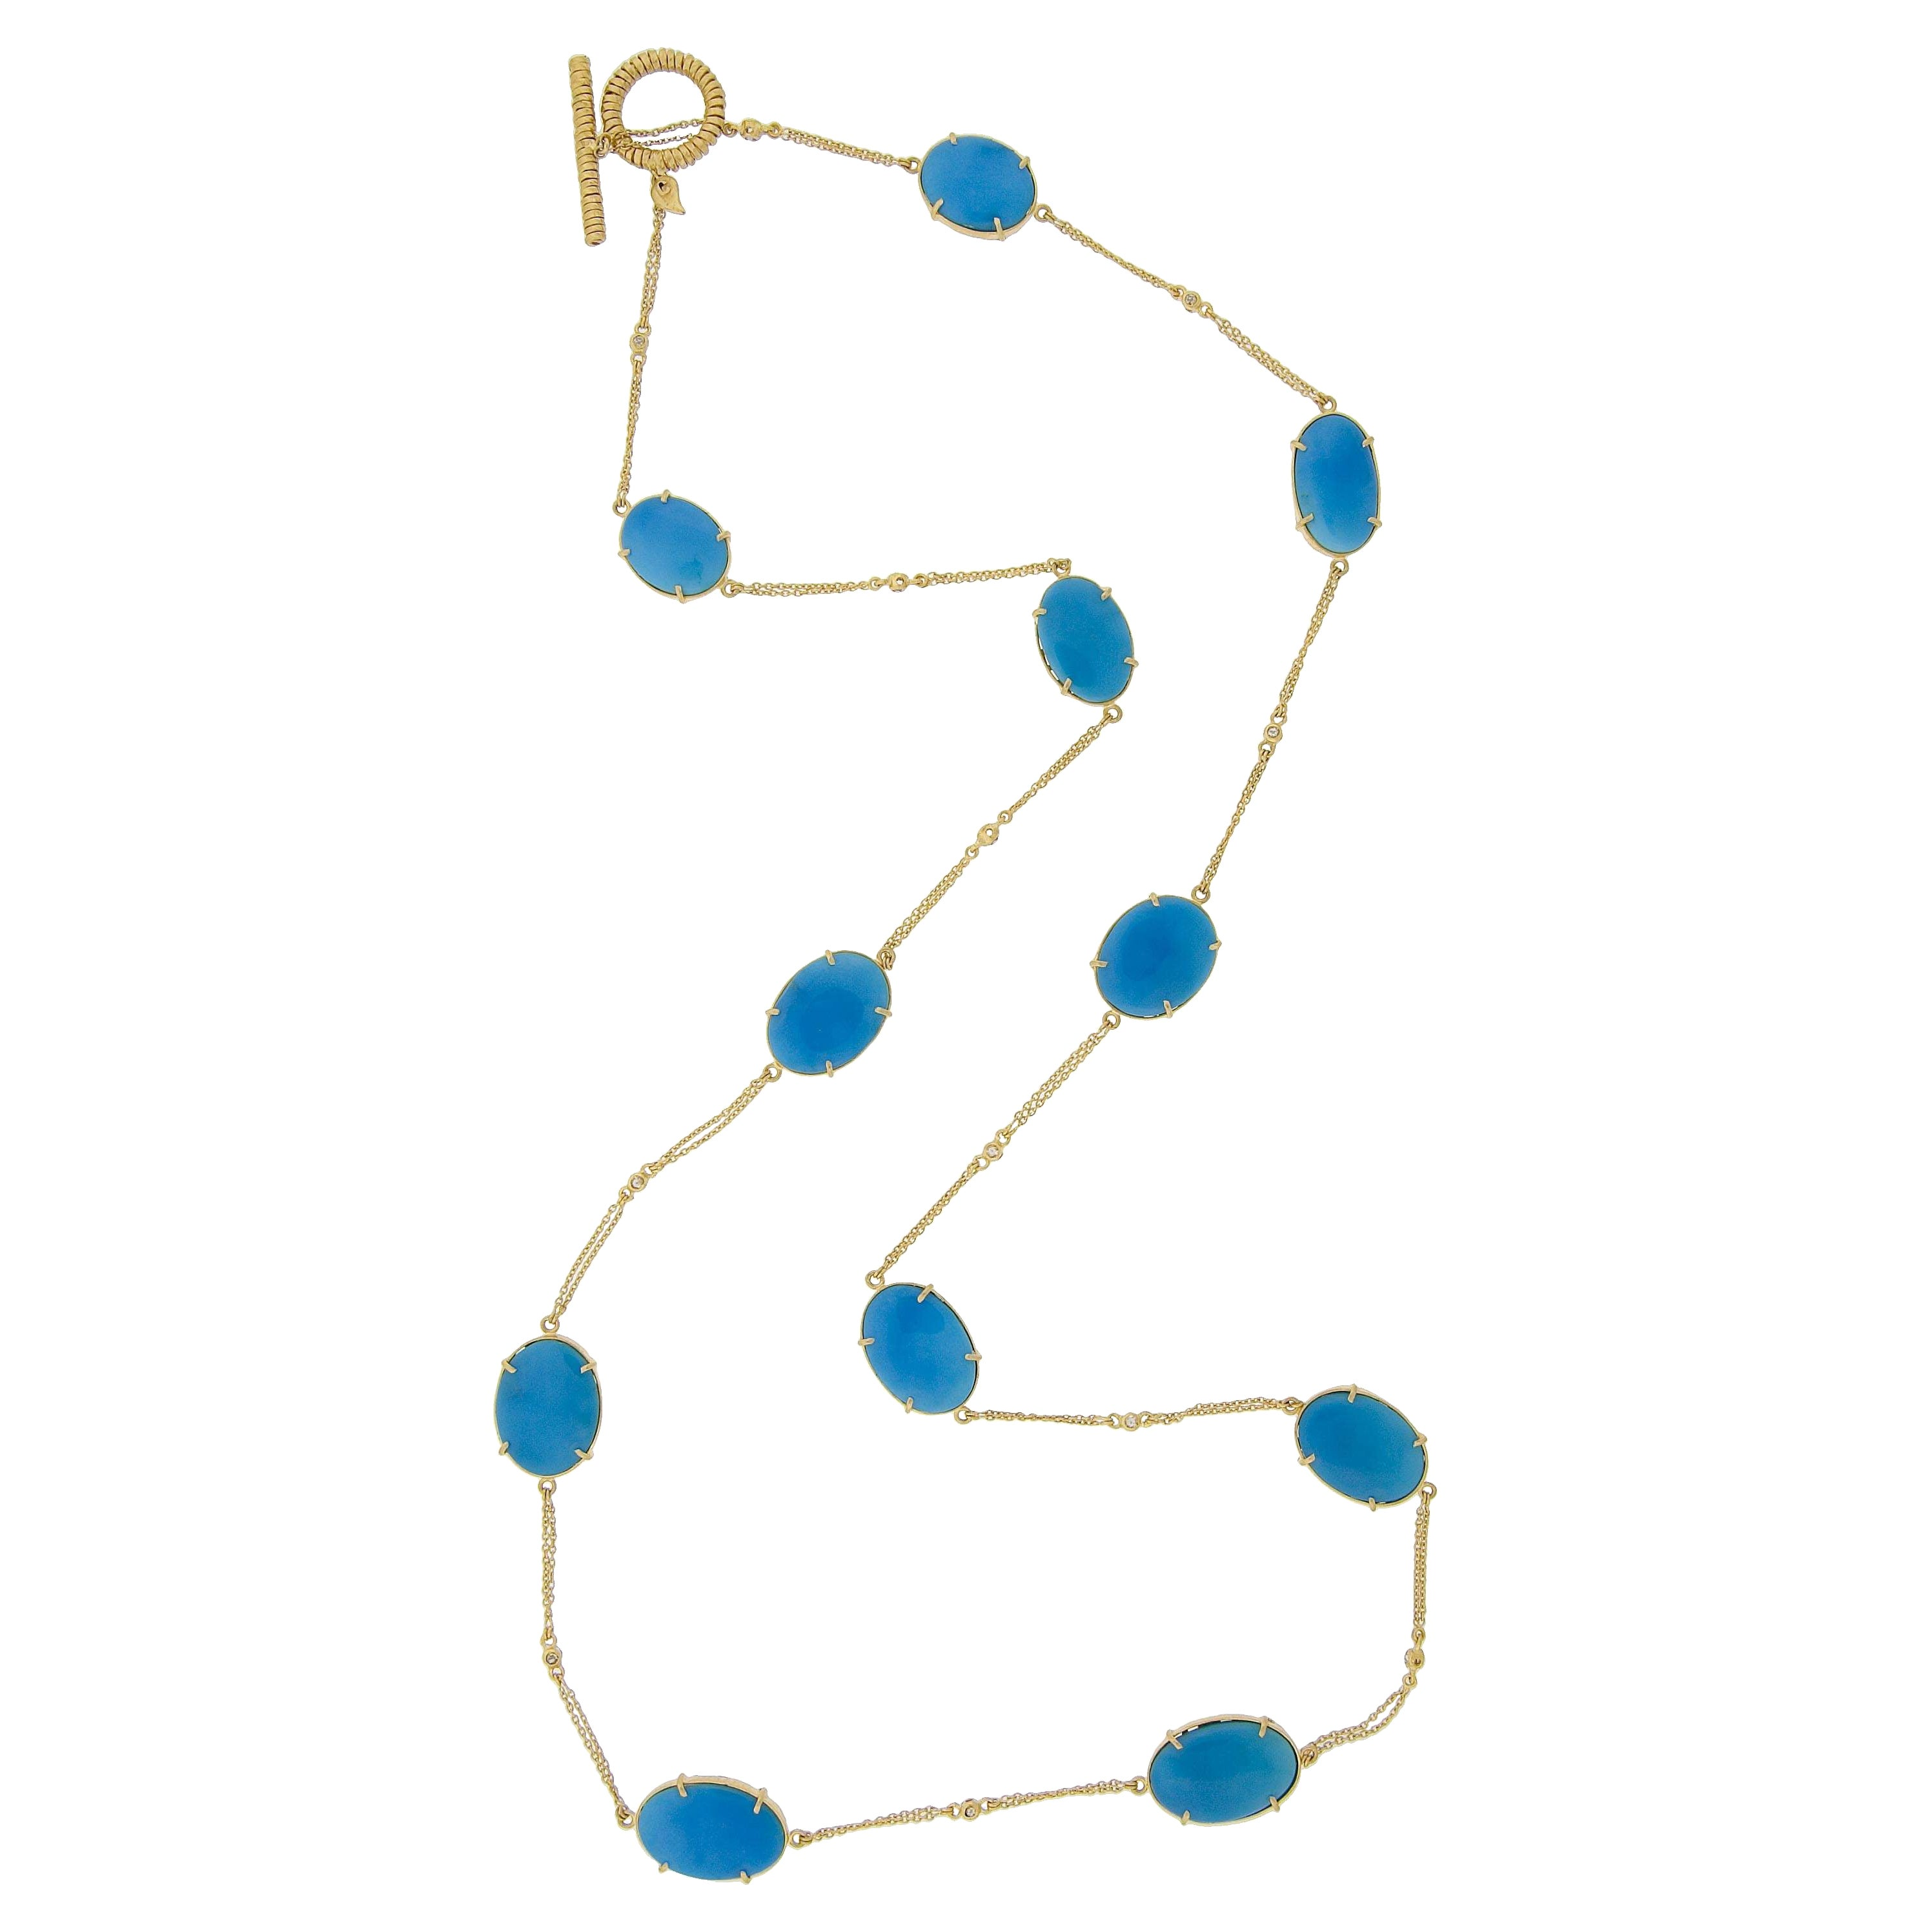 Turquoise Nuggets and Diamond Necklace in 20K Yellow Gold